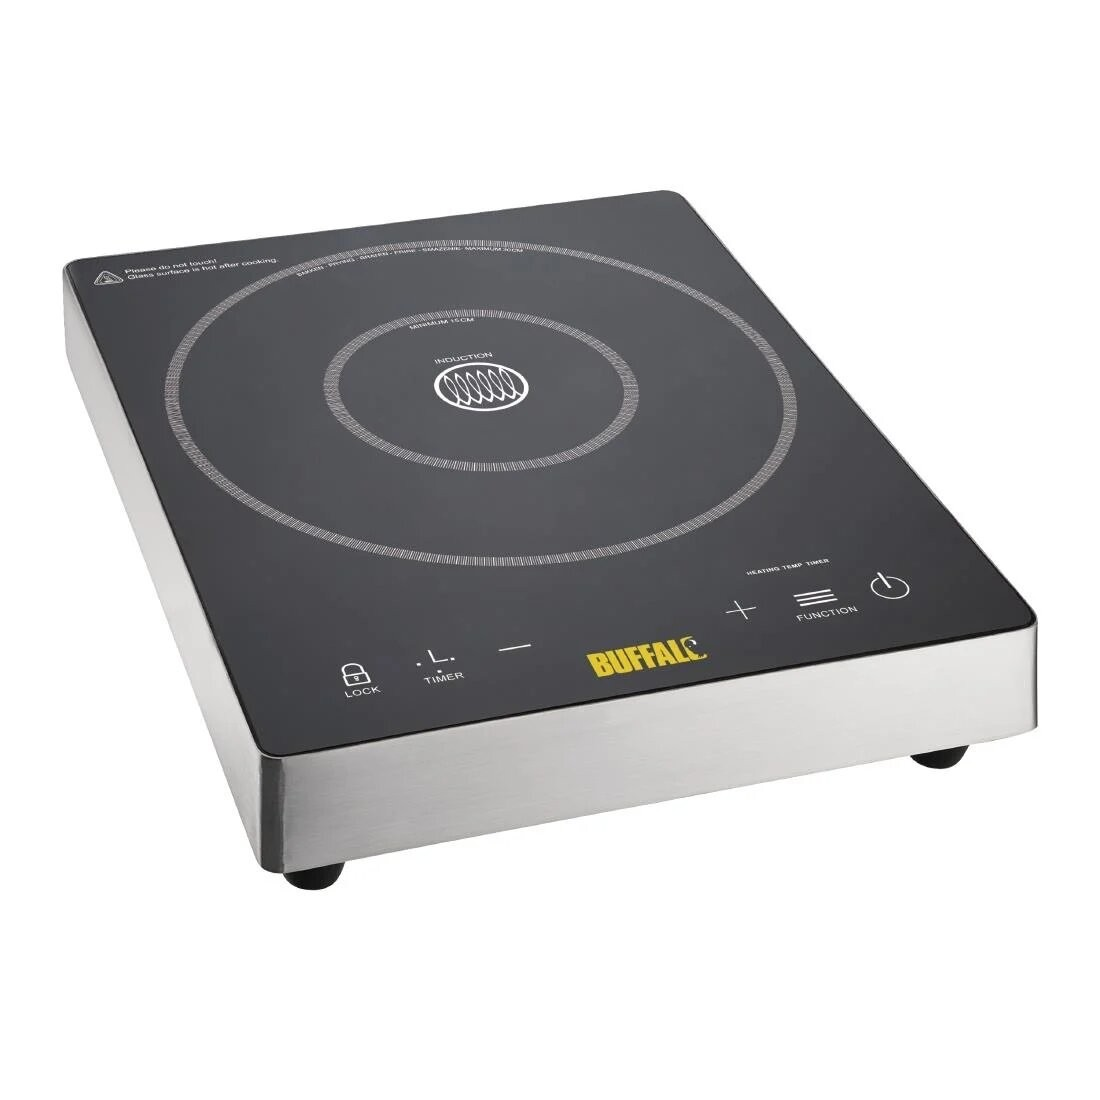 Buffalo DF825 Touch Control Single Induction Hob